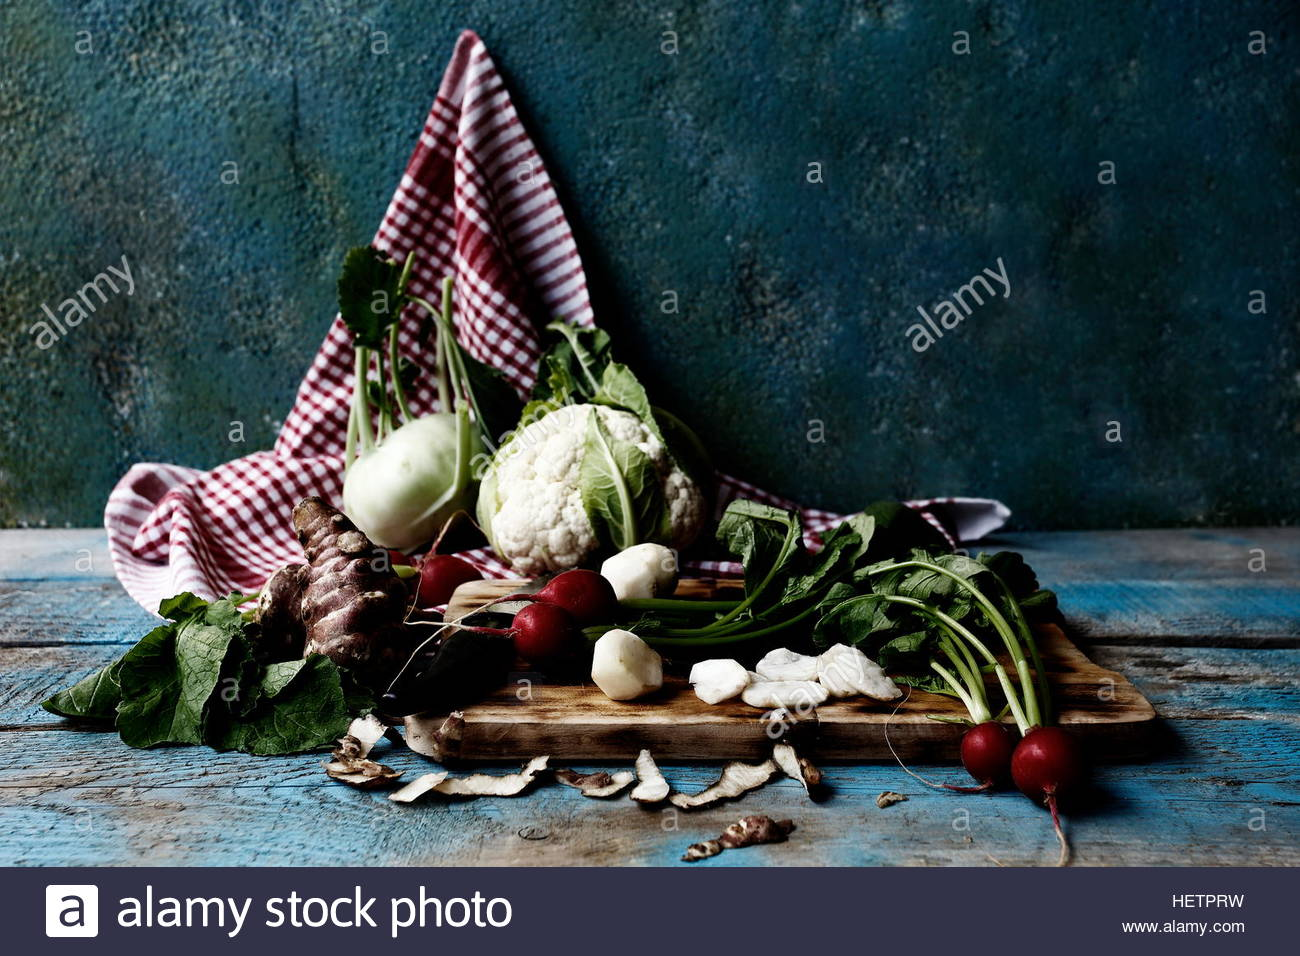 Organic winter vegetables, natural foods, healthy life - Stock Image